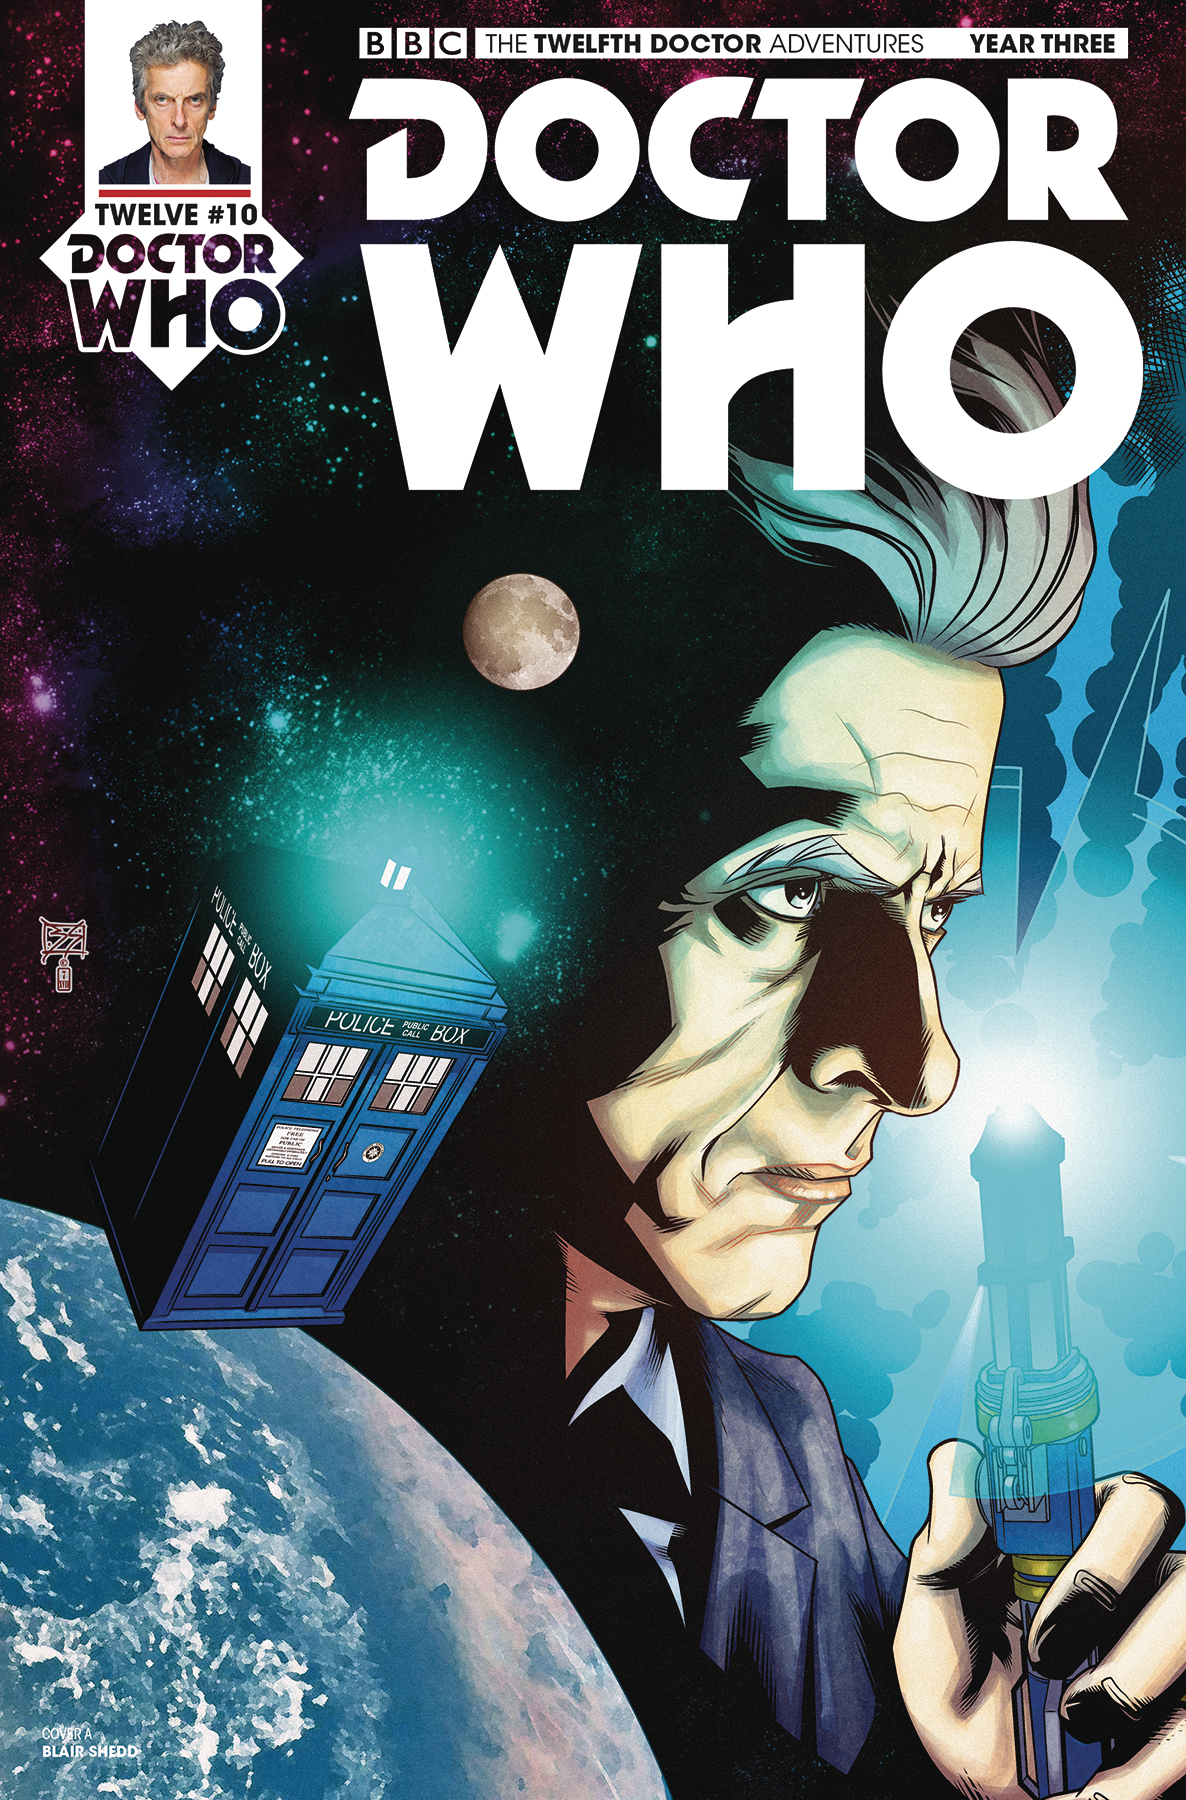 DOCTOR WHO 12TH YEAR THREE #11 CVR A SHEDD